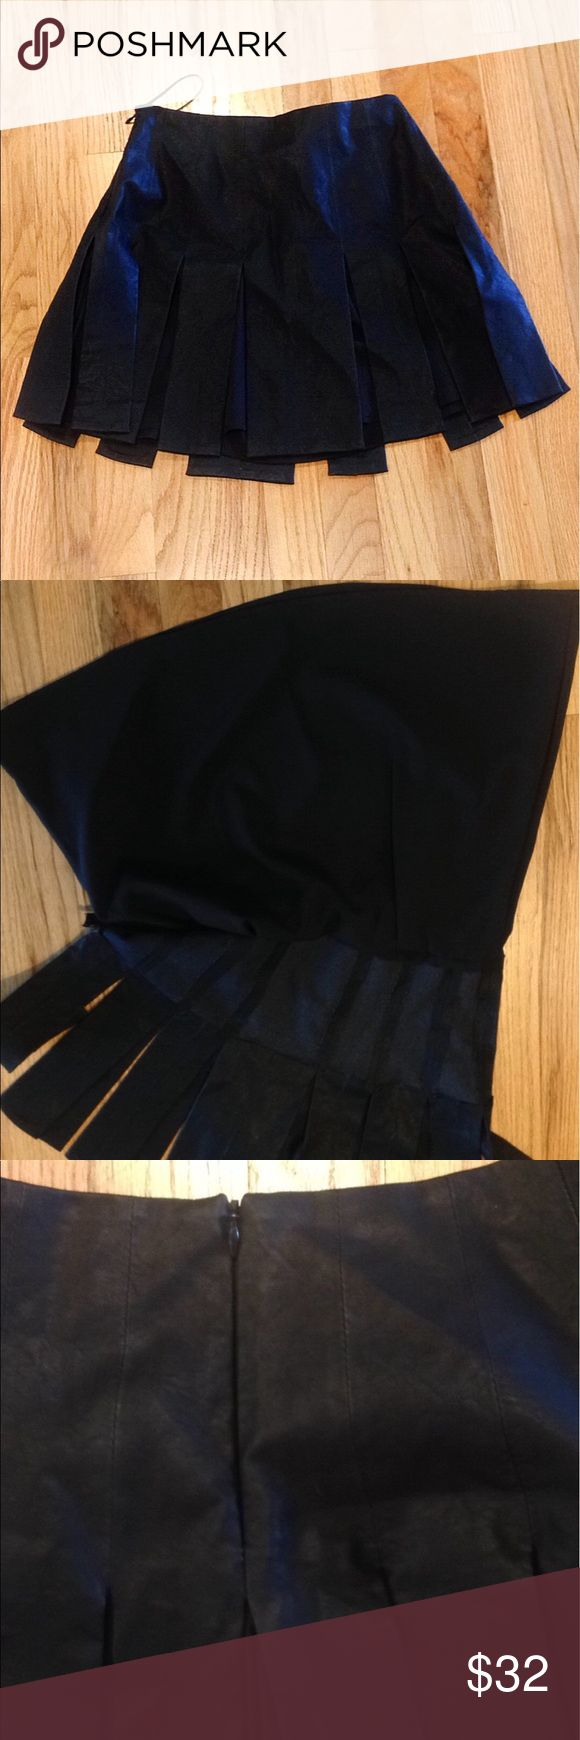 ZARA TRAFALUC Leather Skater Skirt 100% Non Smoking, No Pet Home.   Top 5% & ⭐️⭐️⭐️⭐️⭐️ Seller. Shop with confidence :)  Feel free to like, follow, and share. Open to offers. Thanks for the love. Like new. Black photo leather skirt has slip underneath skater style fit zipper back with clasp 100% polyester USA small Zara Skirts Circle & Skater